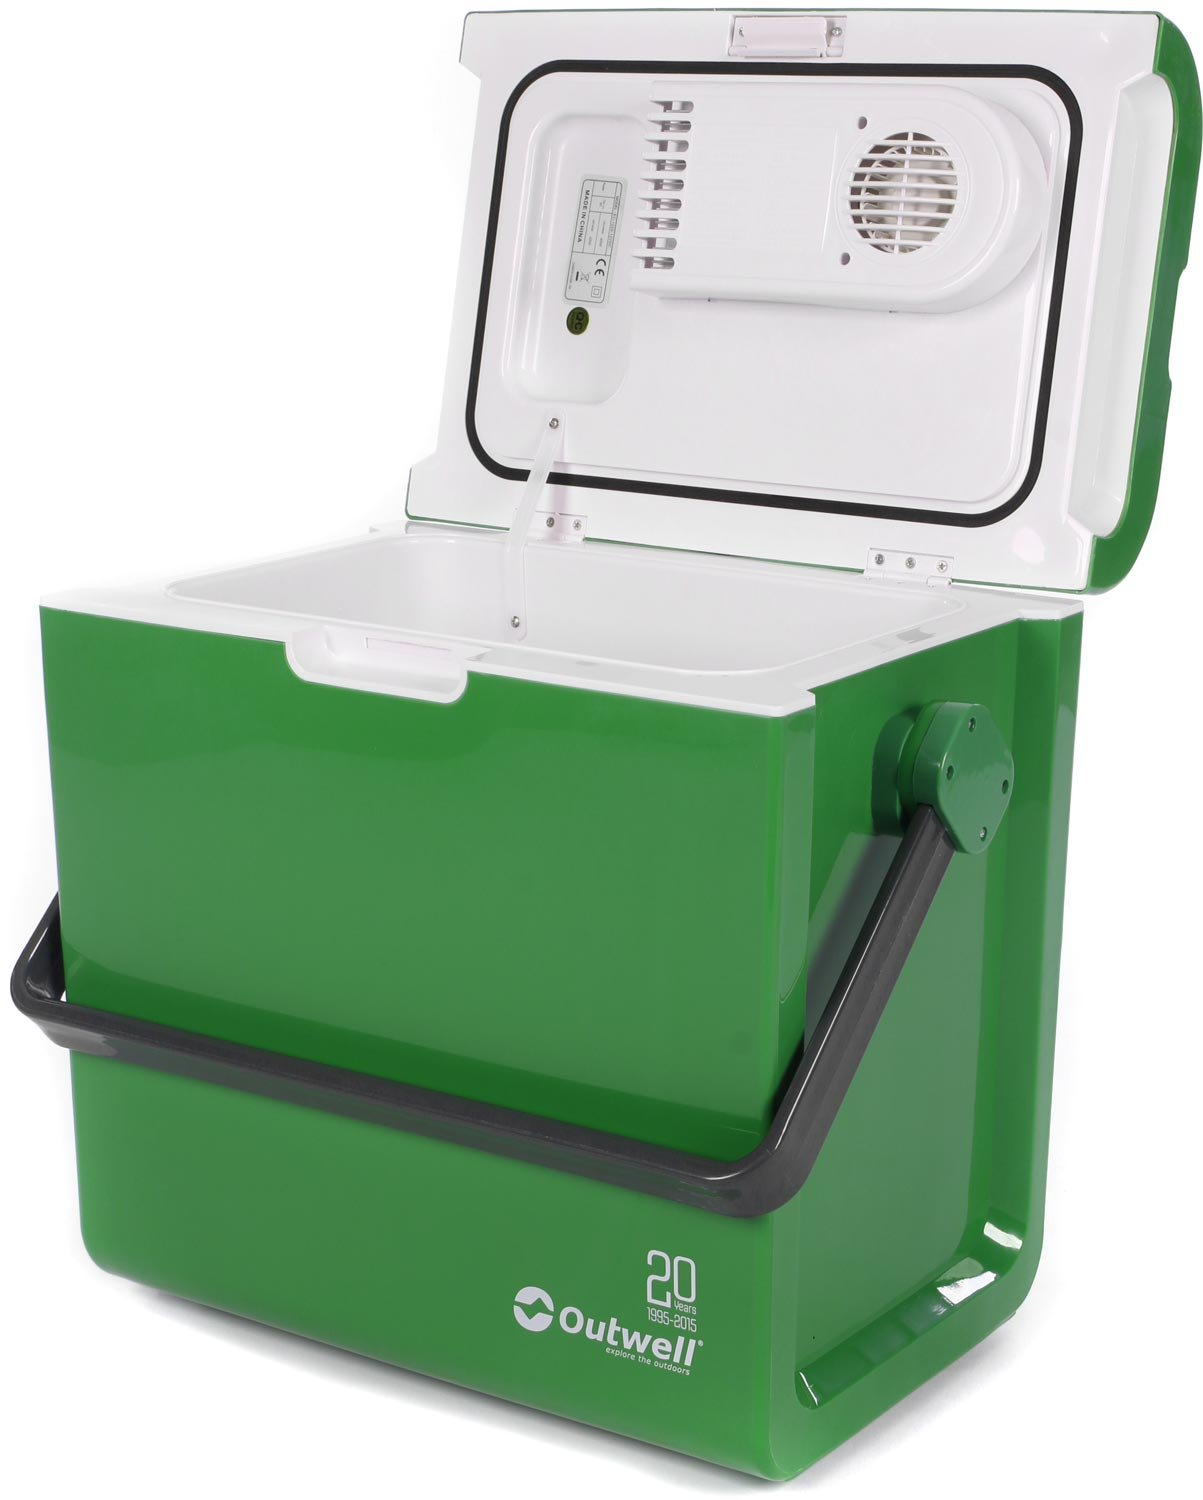 44783a8cdda Outwell ECOcool cool box 12v 24L green 2015 cooler  Amazon.co.uk  Garden    Outdoors